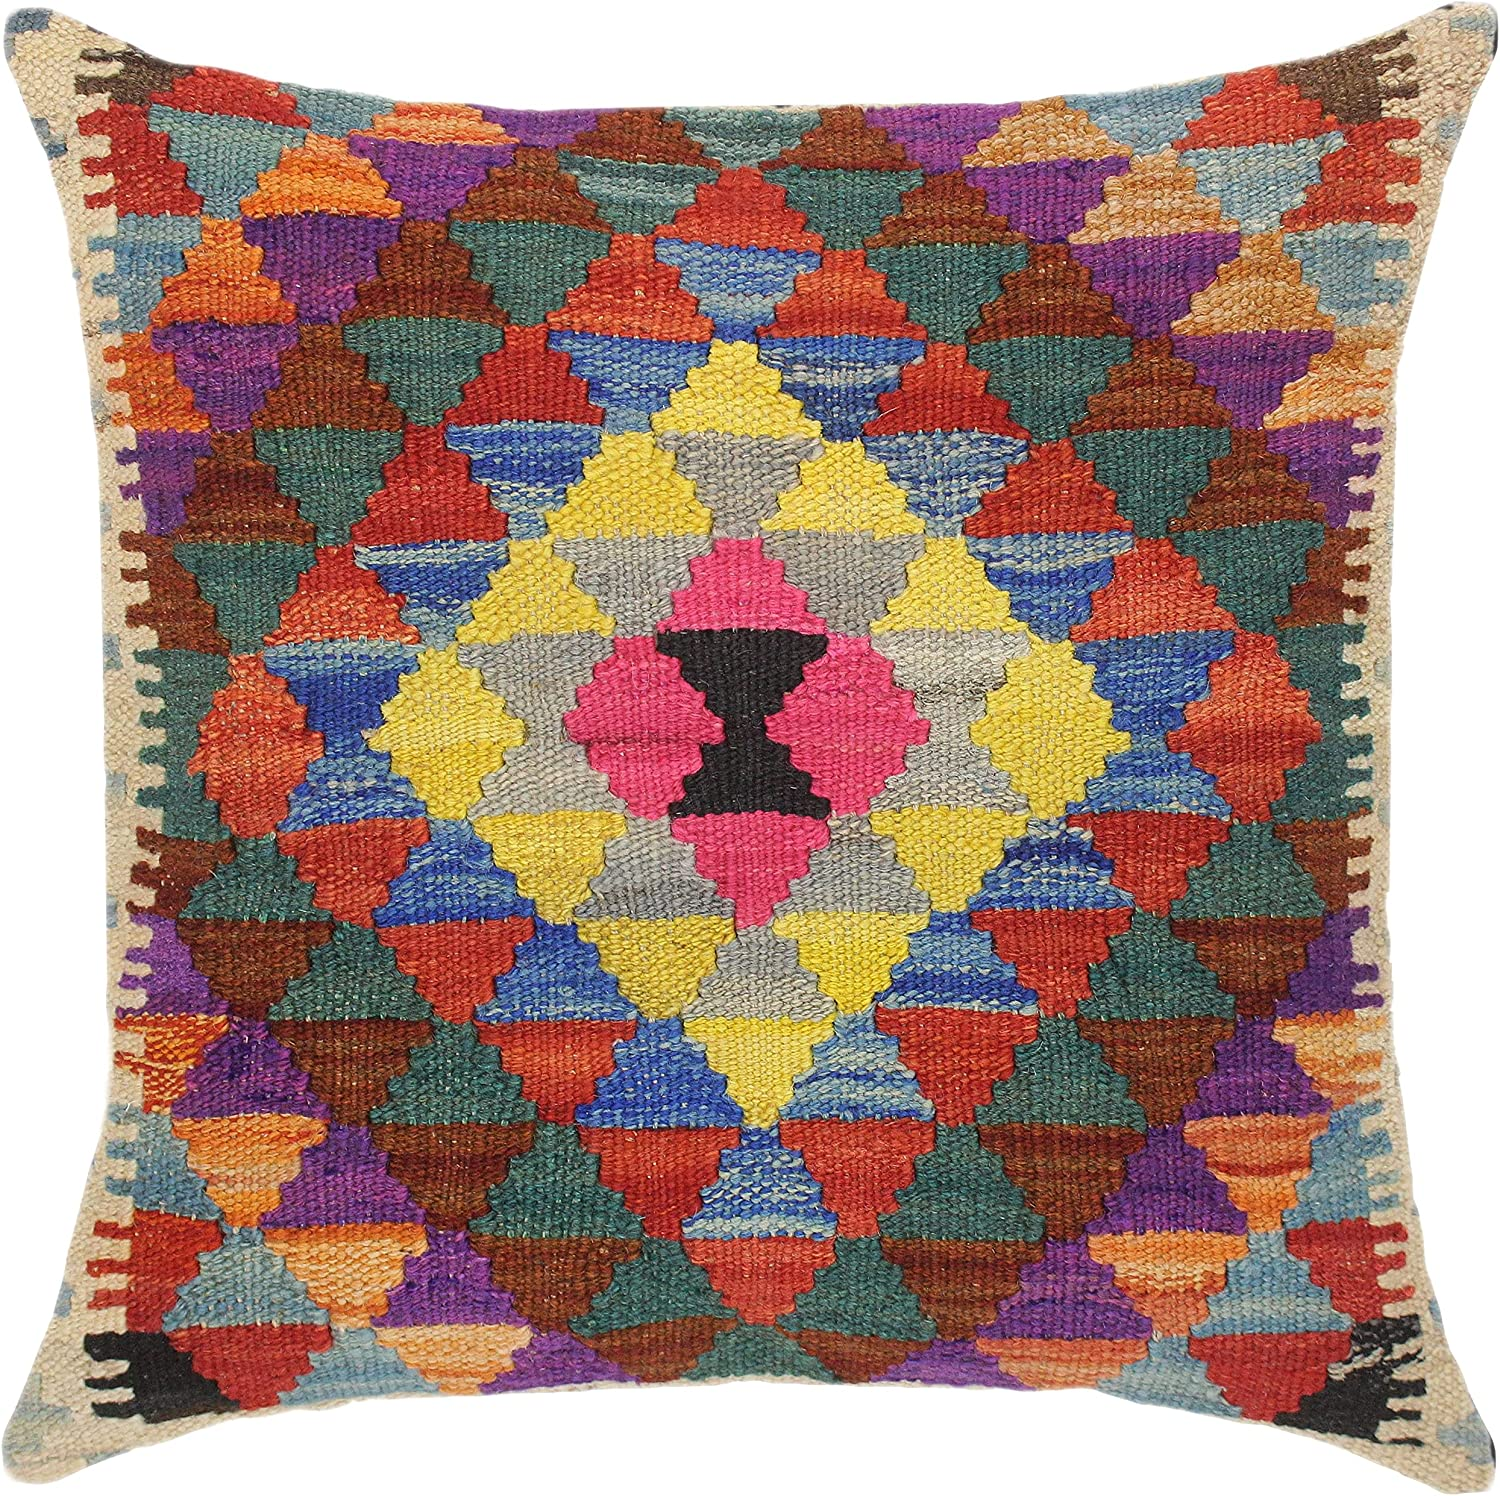 Shabby Chic Turkish At the price Despina Hand Woven Throw Pillow Kilim 2021 spring and summer new